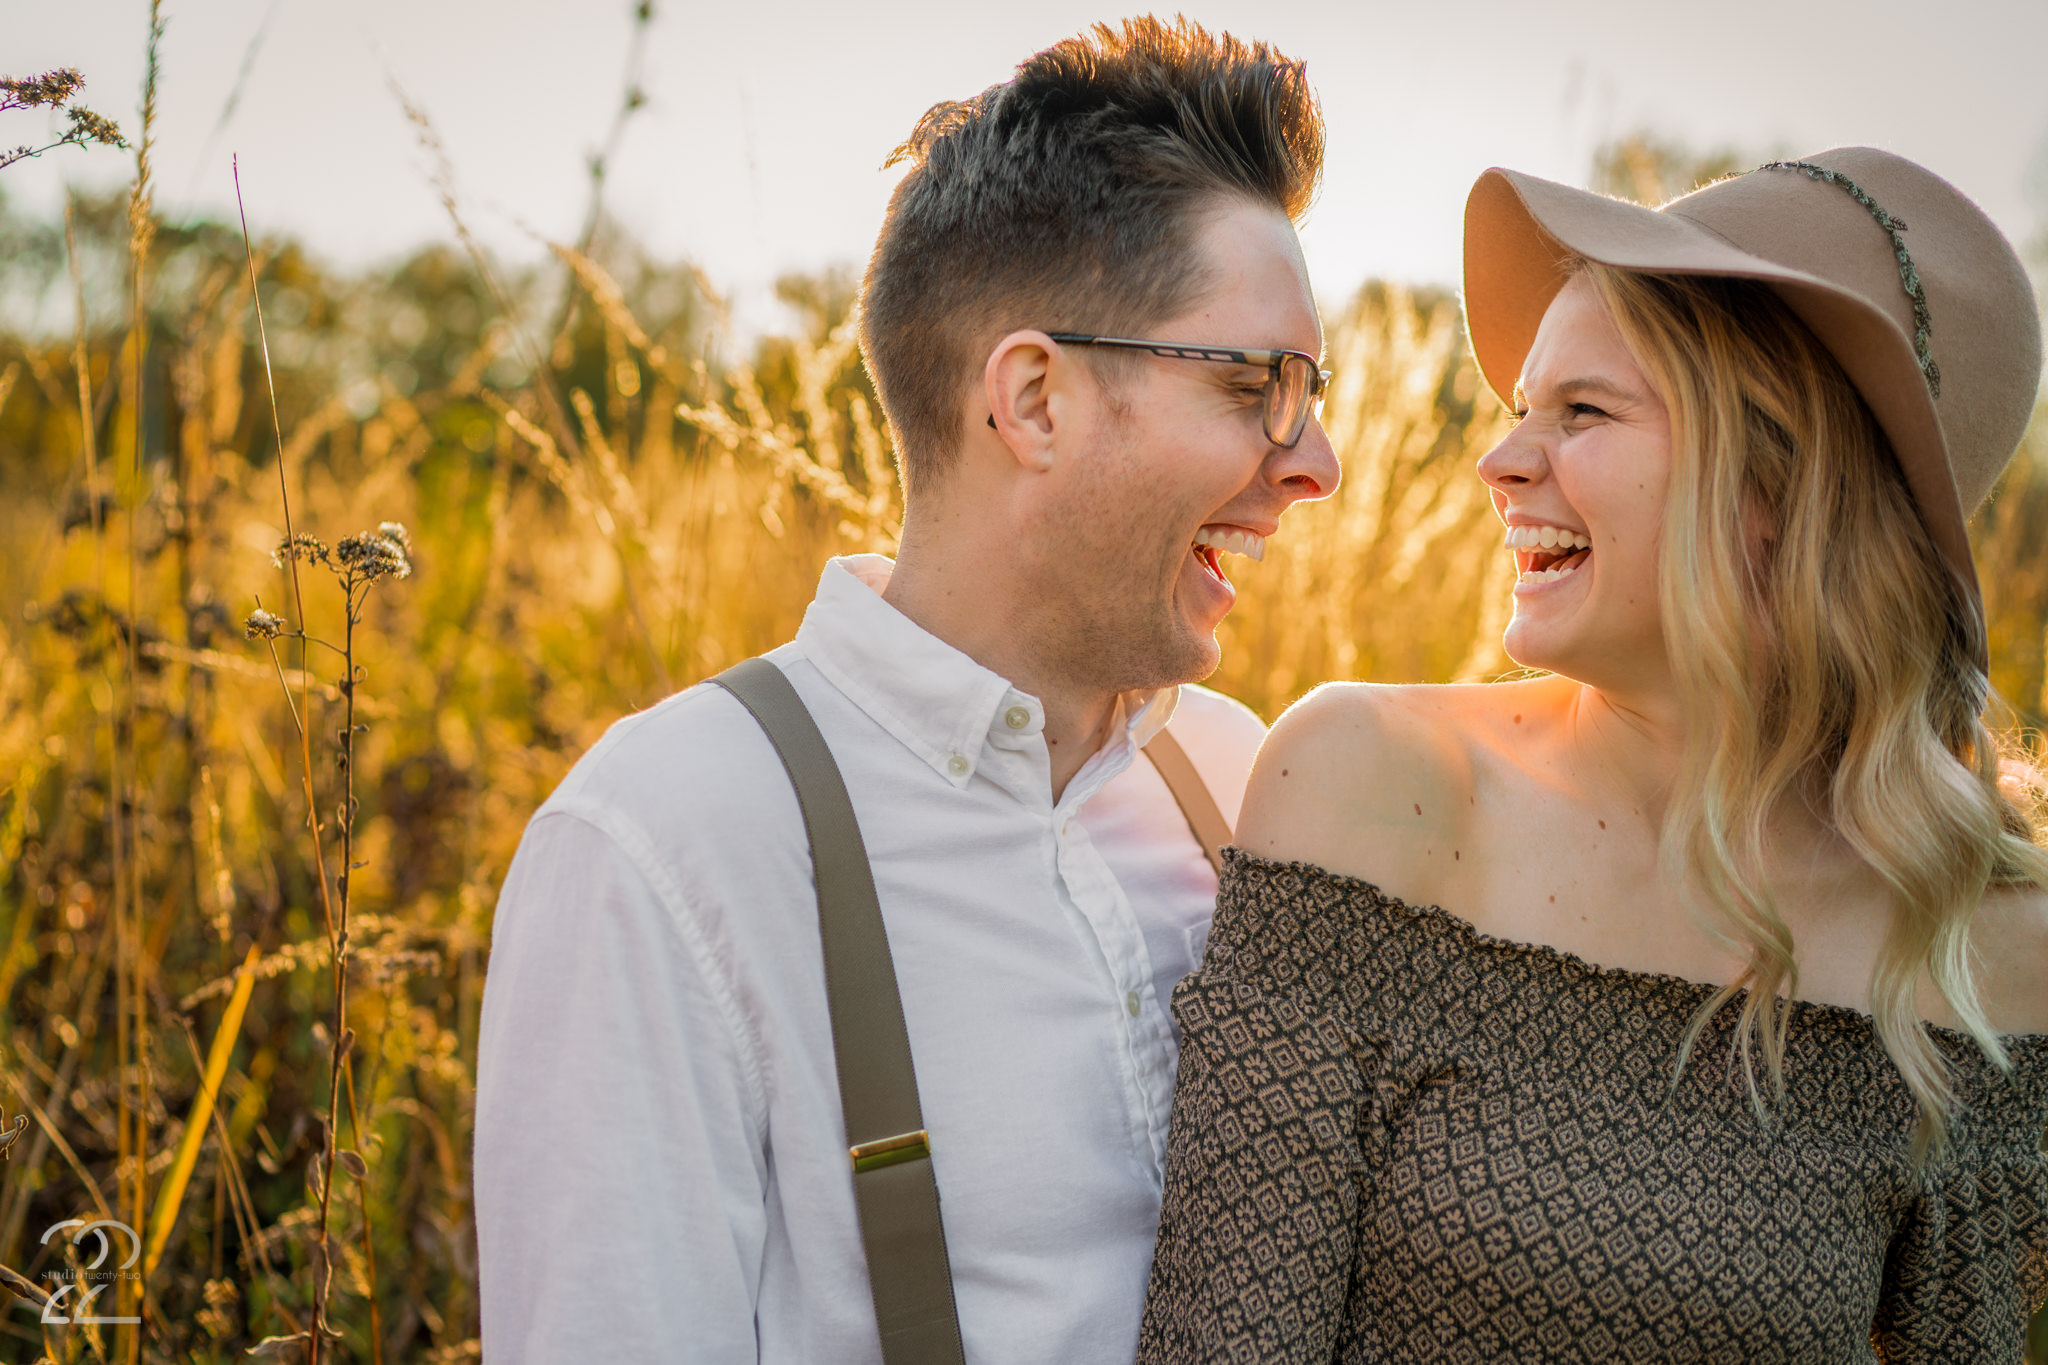 Man and woman laugh together in a field during sunset at Wegerzyn Garden Metropark by Dayton Wedding Photographer Studio 22 Photography